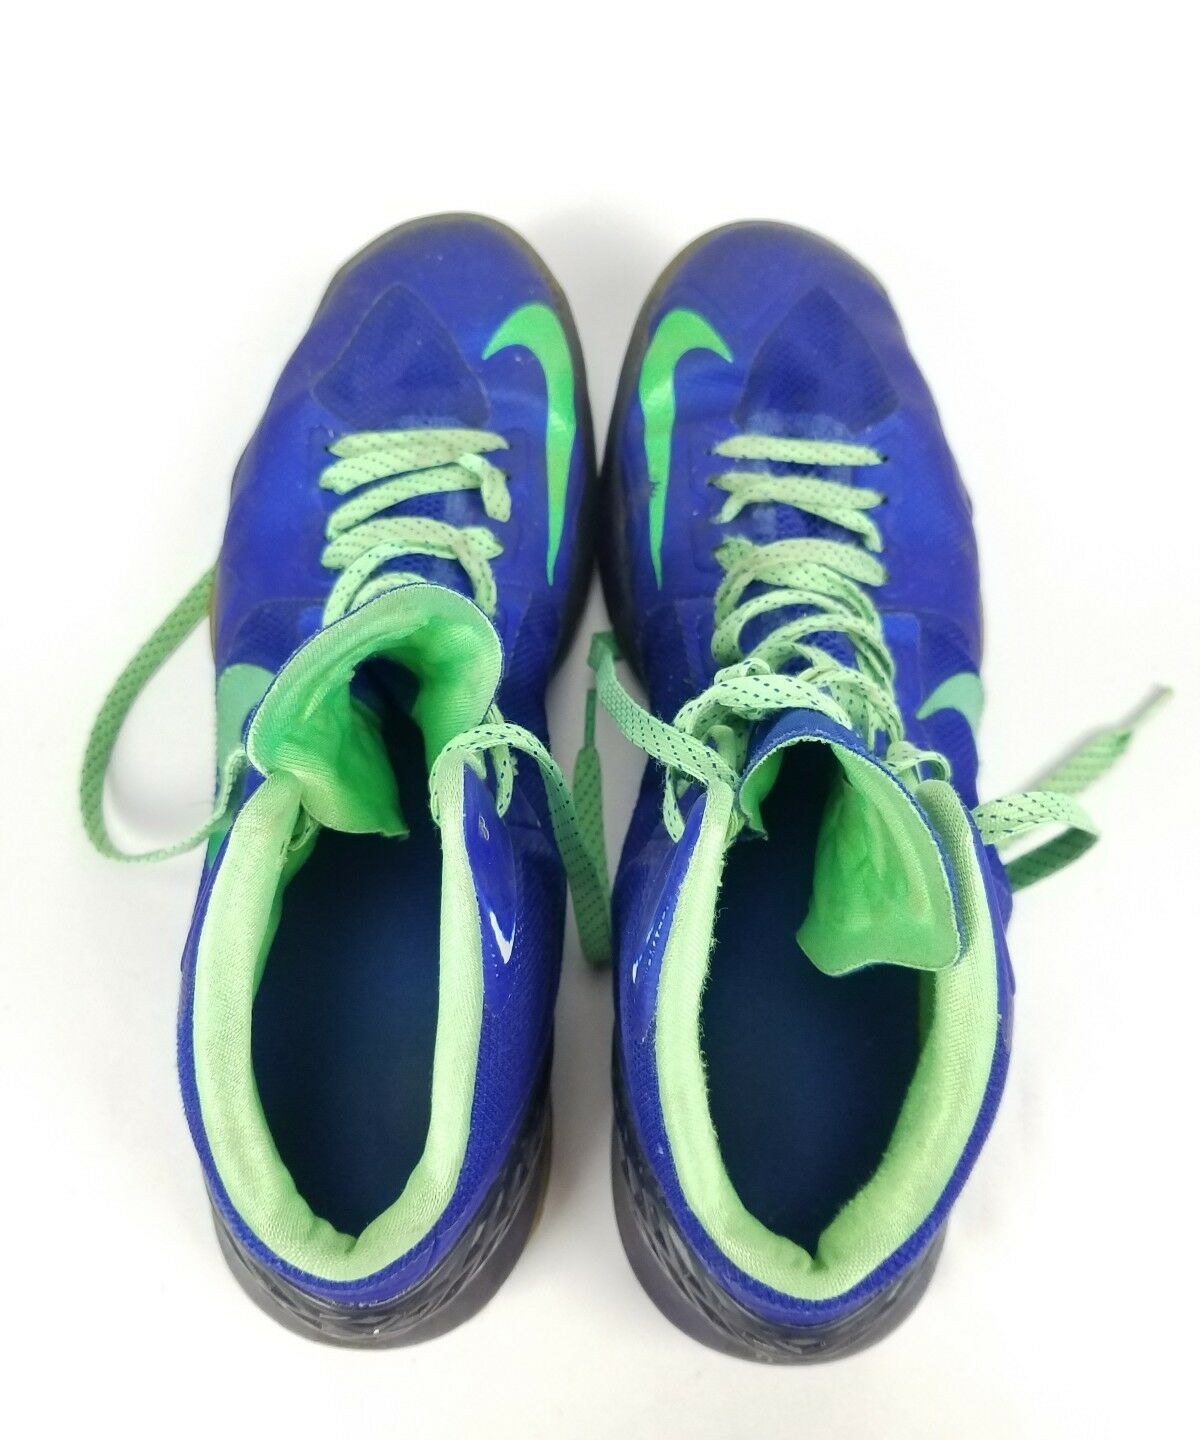 sports shoes 44d20 99cd3 ... Nike Zoom Hyper Disruptor Sneakers Blue Green 548180 402 402 402 Size  12 e53dff ...